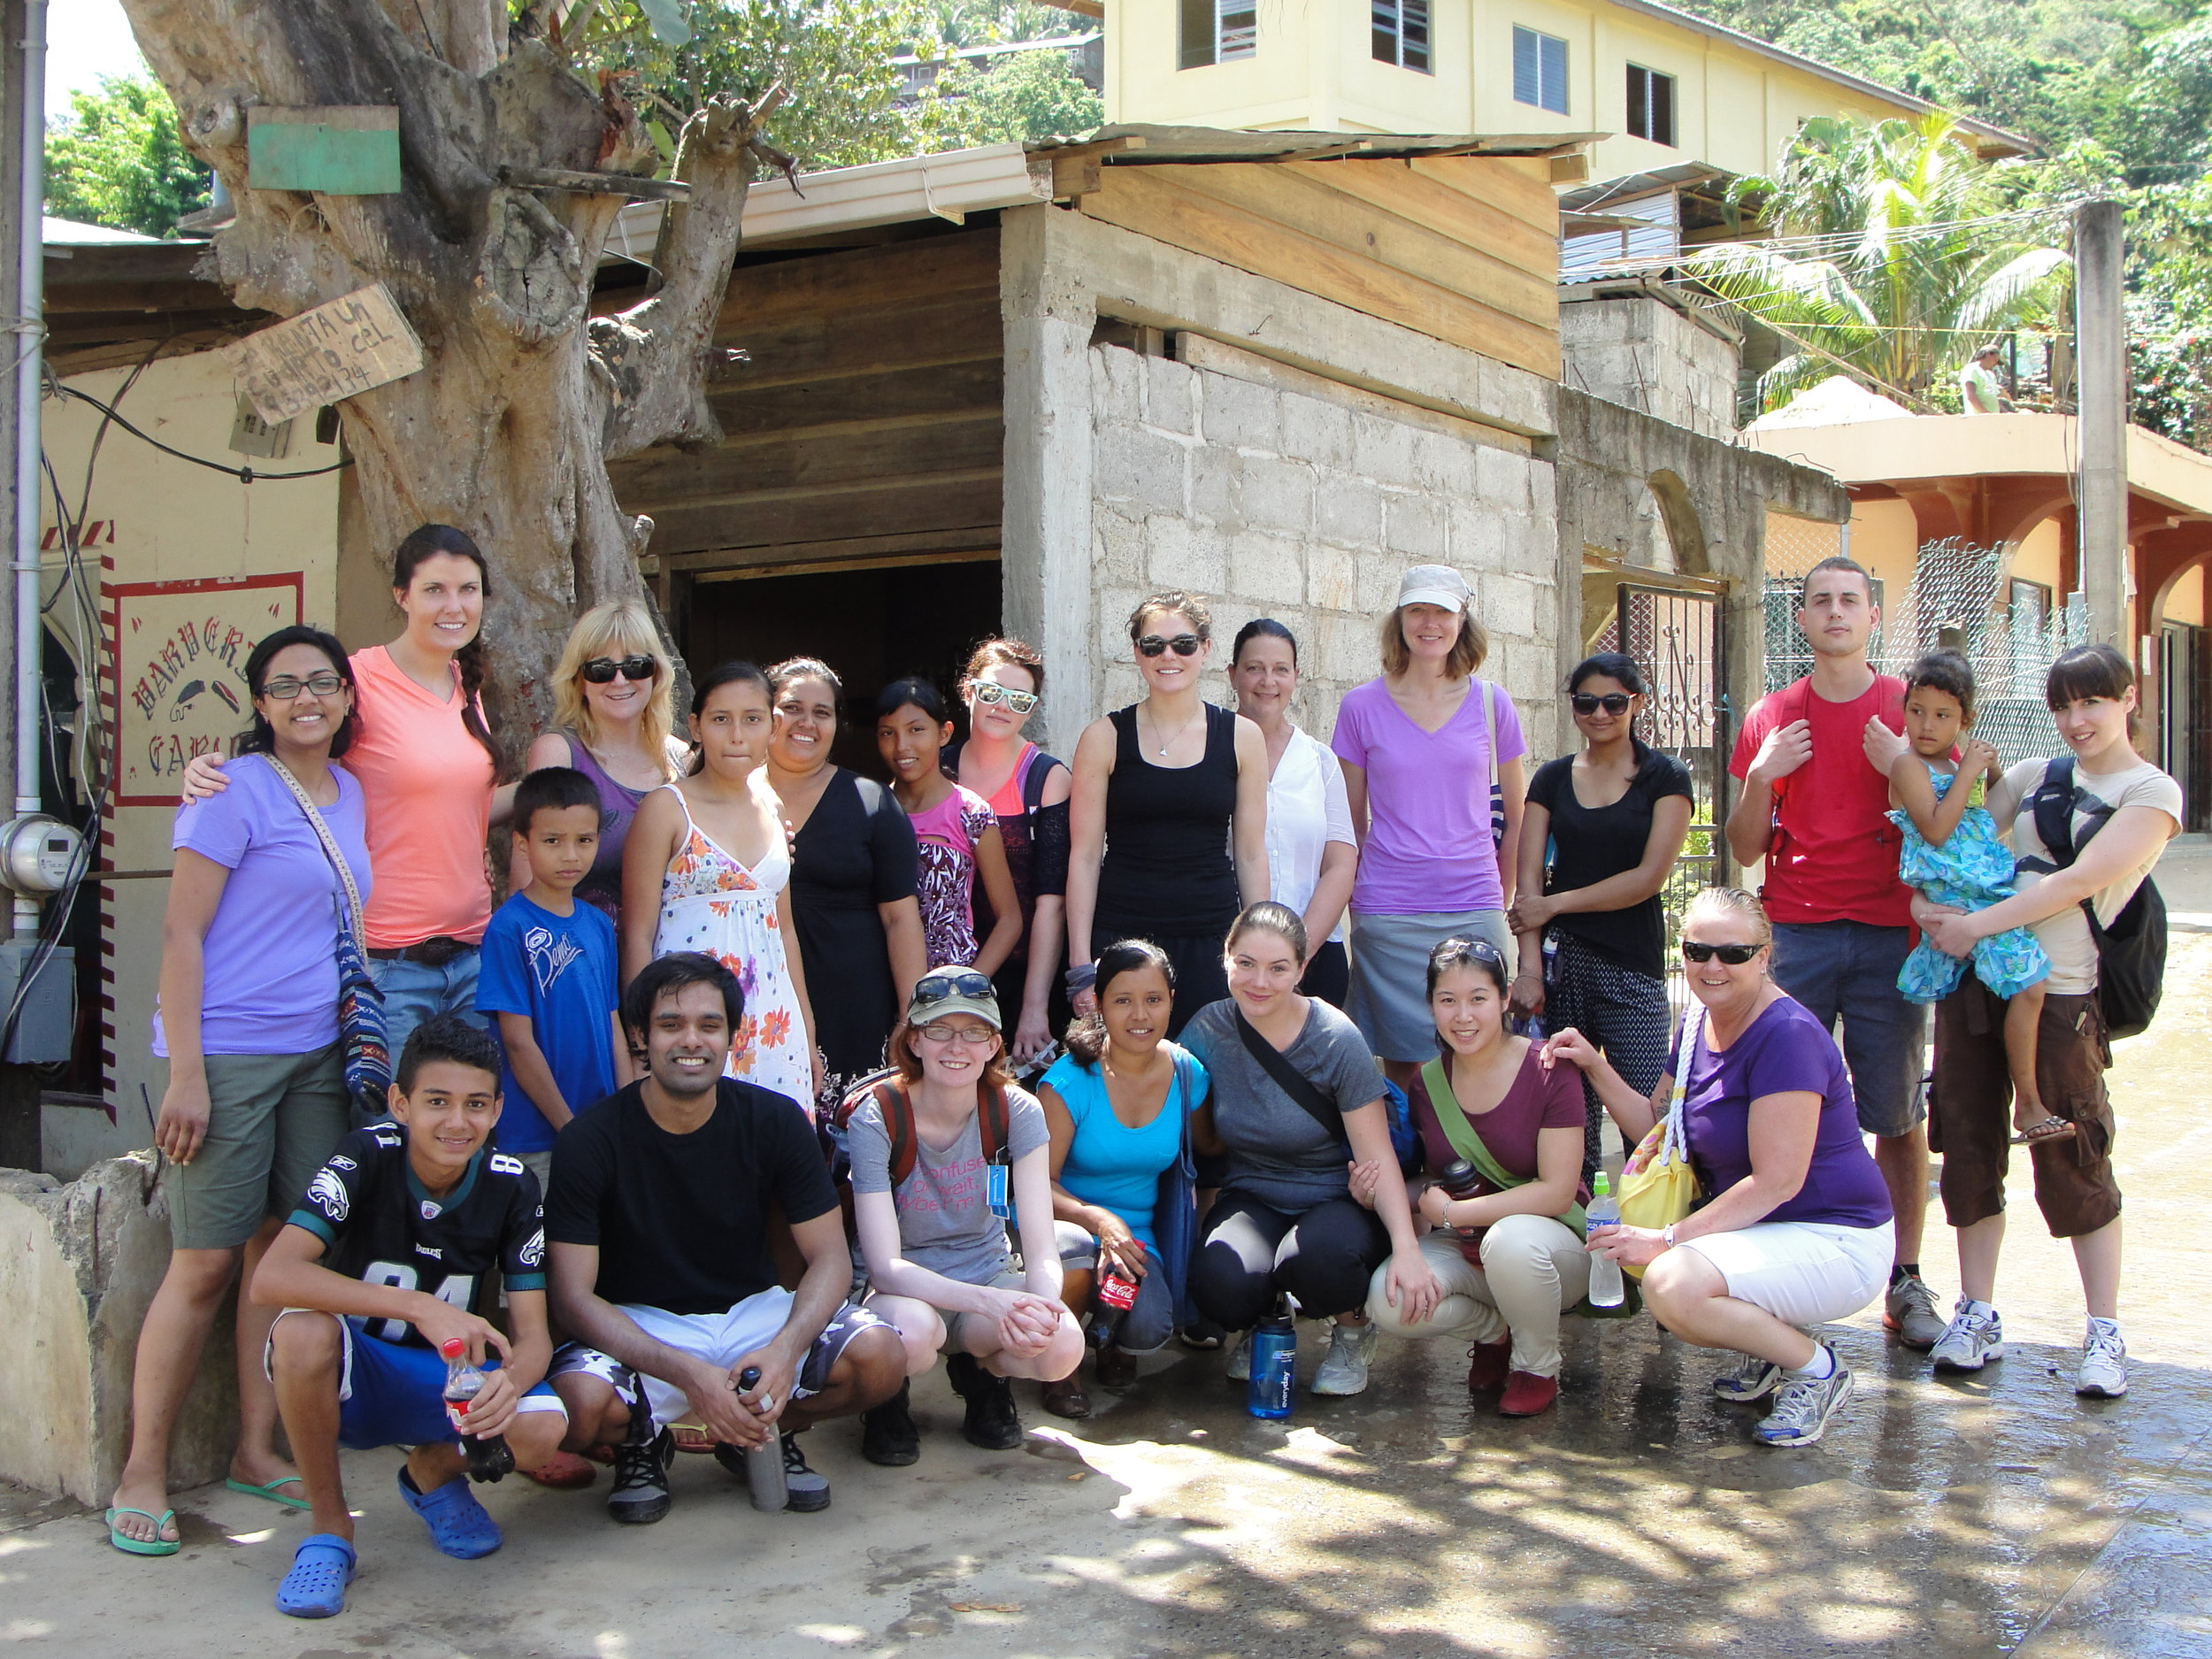 Image courtesy Centennial College whose students worked in community development projects in Honduras.